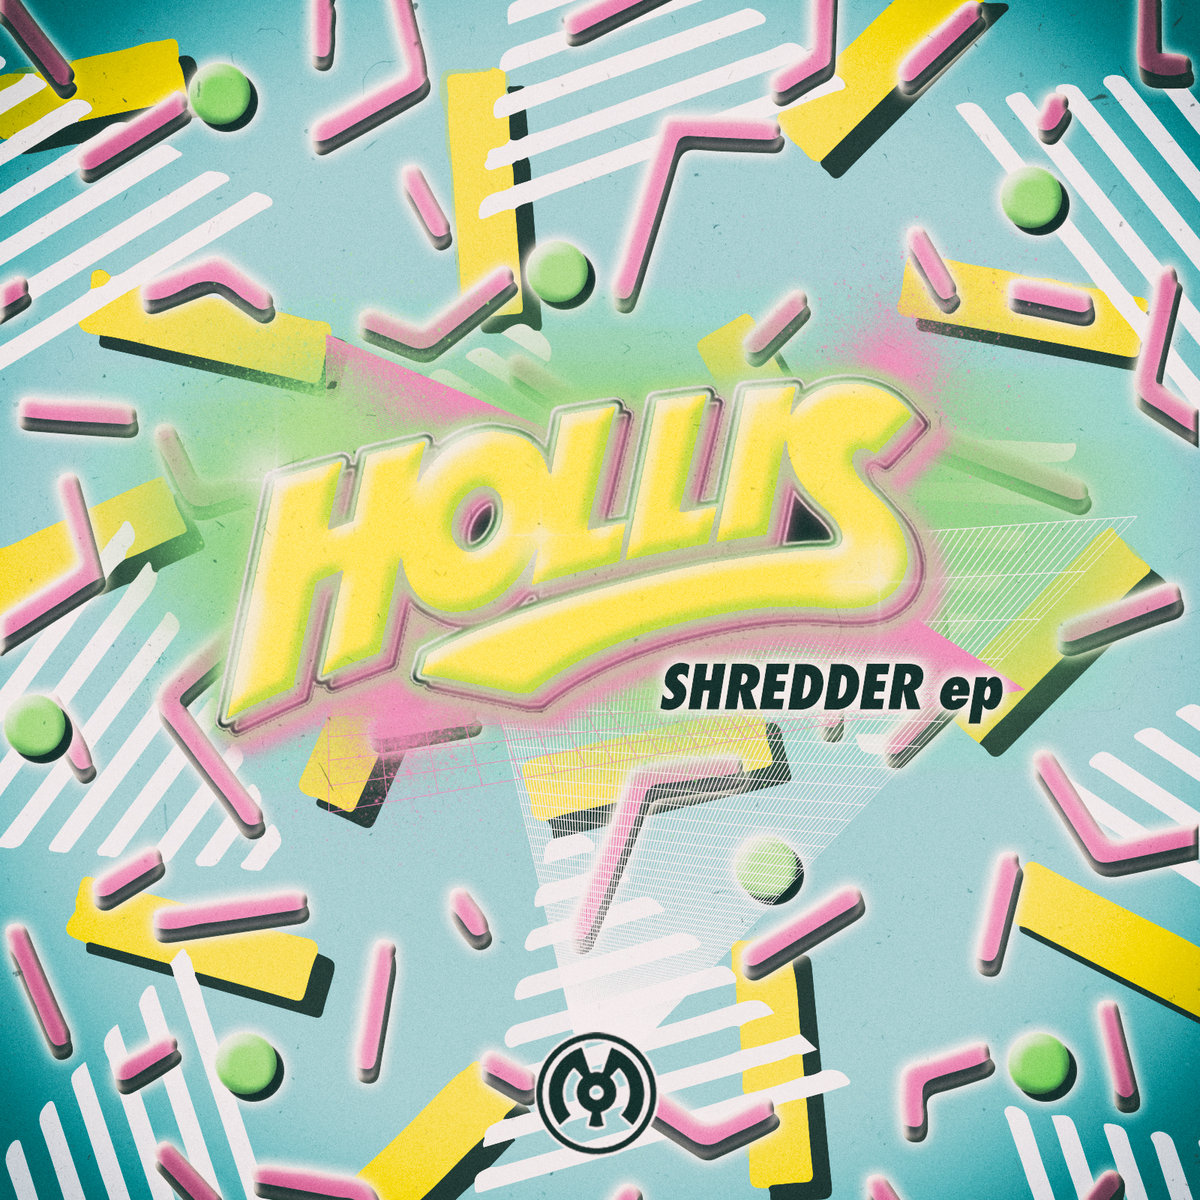 Hollis - Spill the Beanz @ 'Shredder EP' album (electronic, dubstep)